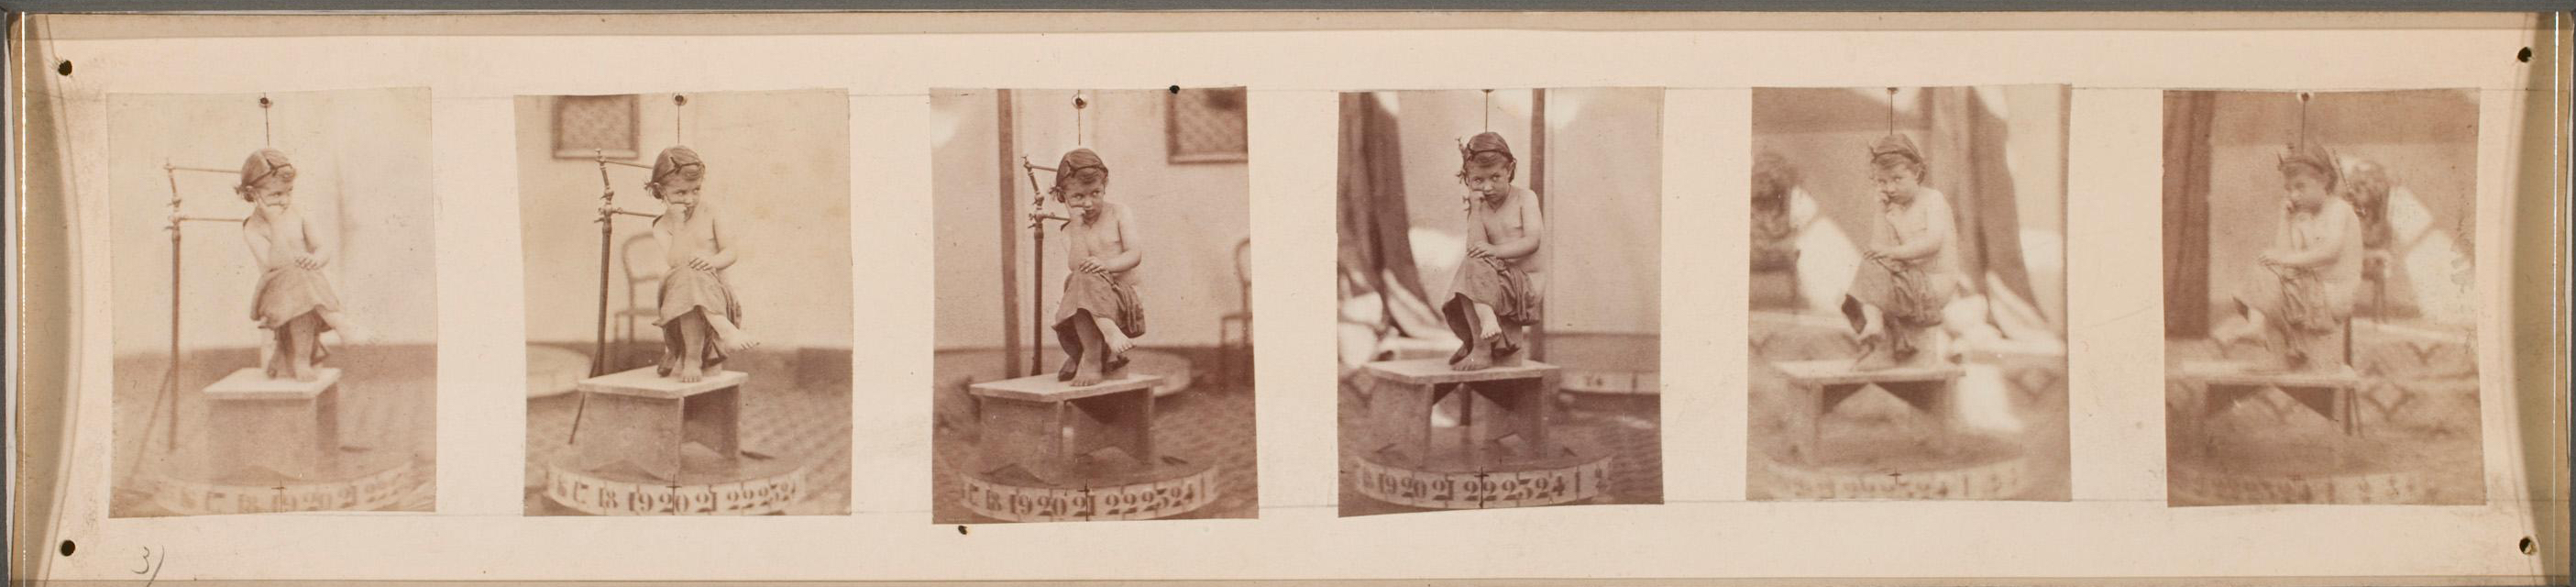 François Willème Study for photosculpture of a seated child 1865 (ca) Albumen prints (x6) 3.5 x 4.5 cm (1 3:8 x 1 3:4 in) (each) George Eastman Museum